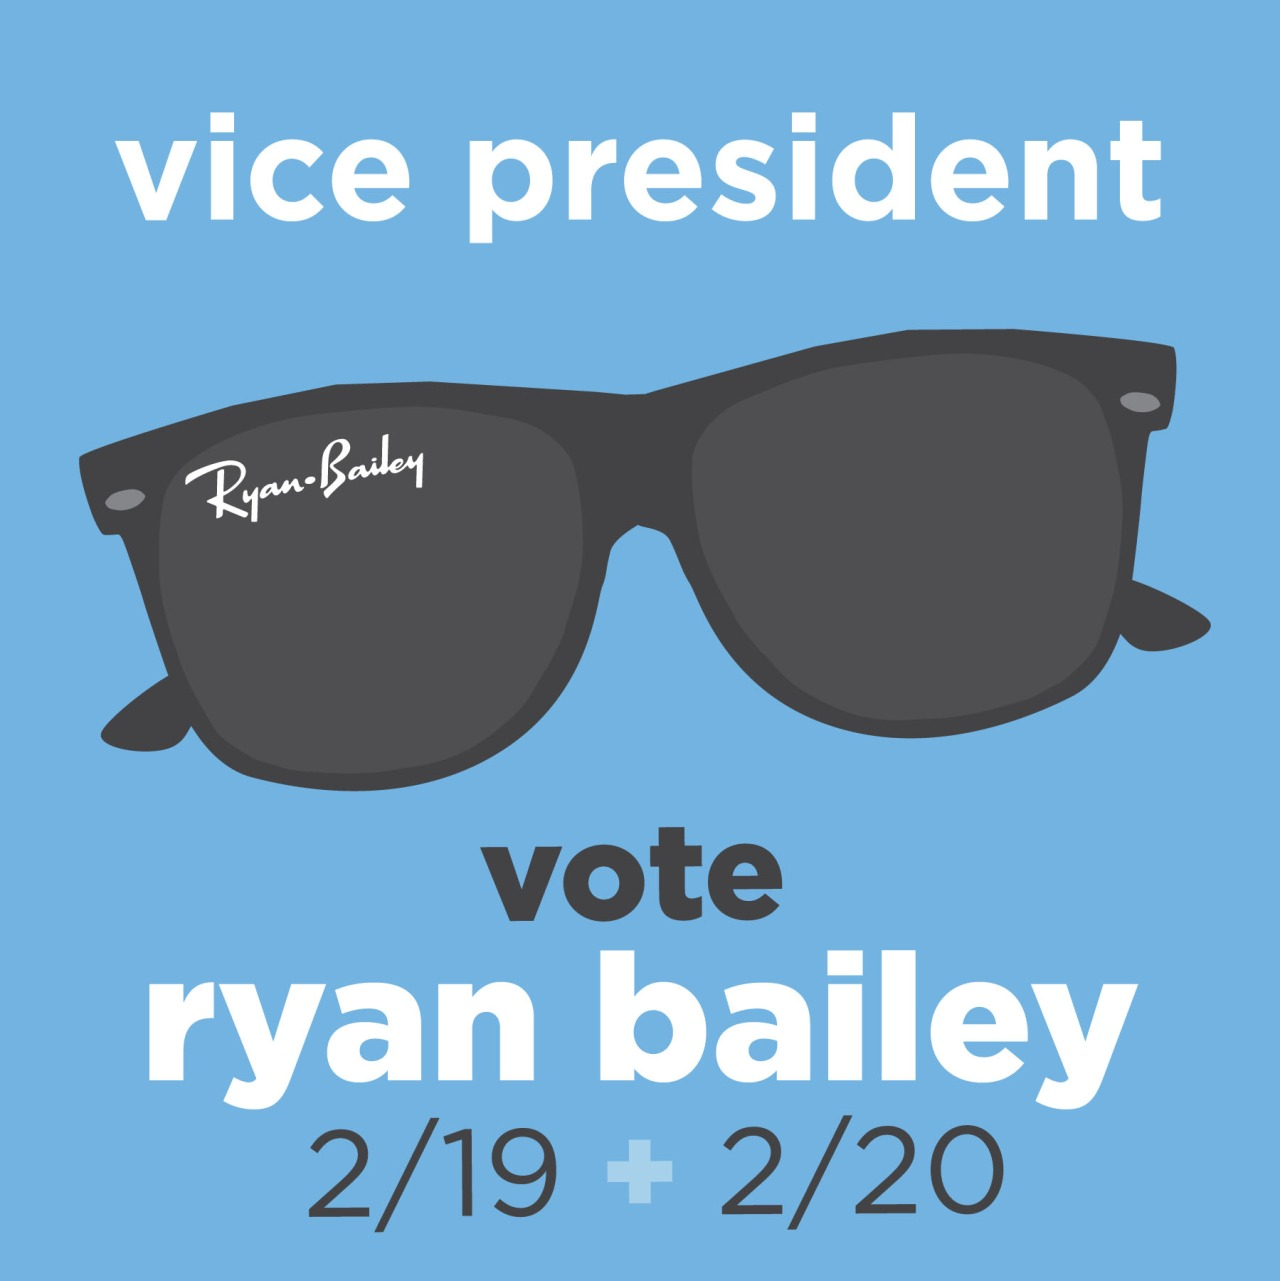 Student body election season has arrived again! I am assisting with a campaign strategy for the candidate as well as managing his social media. Wish us luck!